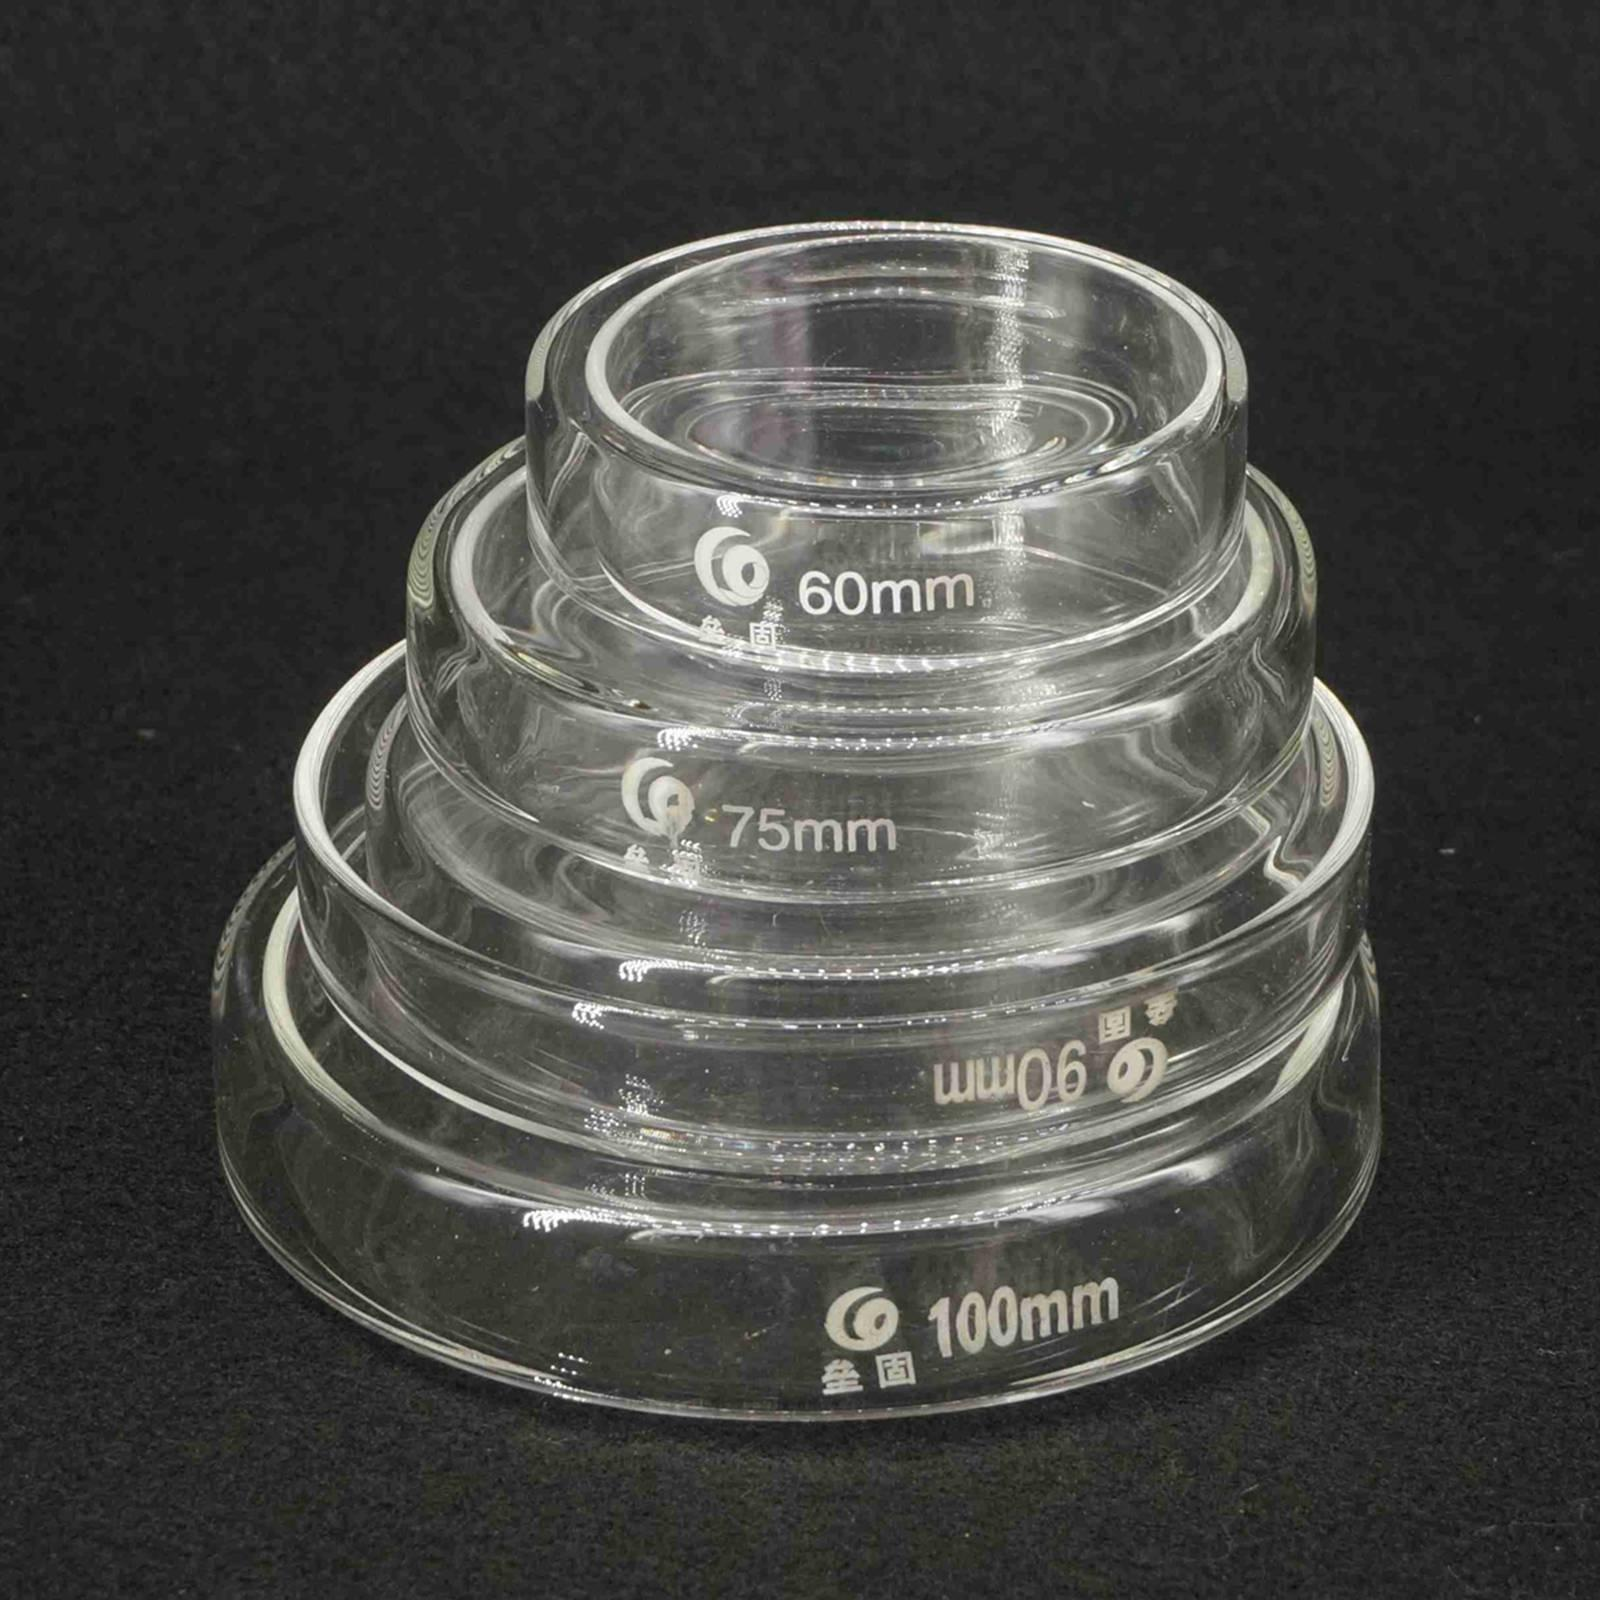 Laboratory Bacterial Yeast Borosilicate Glass Petri Culture Dish 60/75/90/100/120mm With Lids